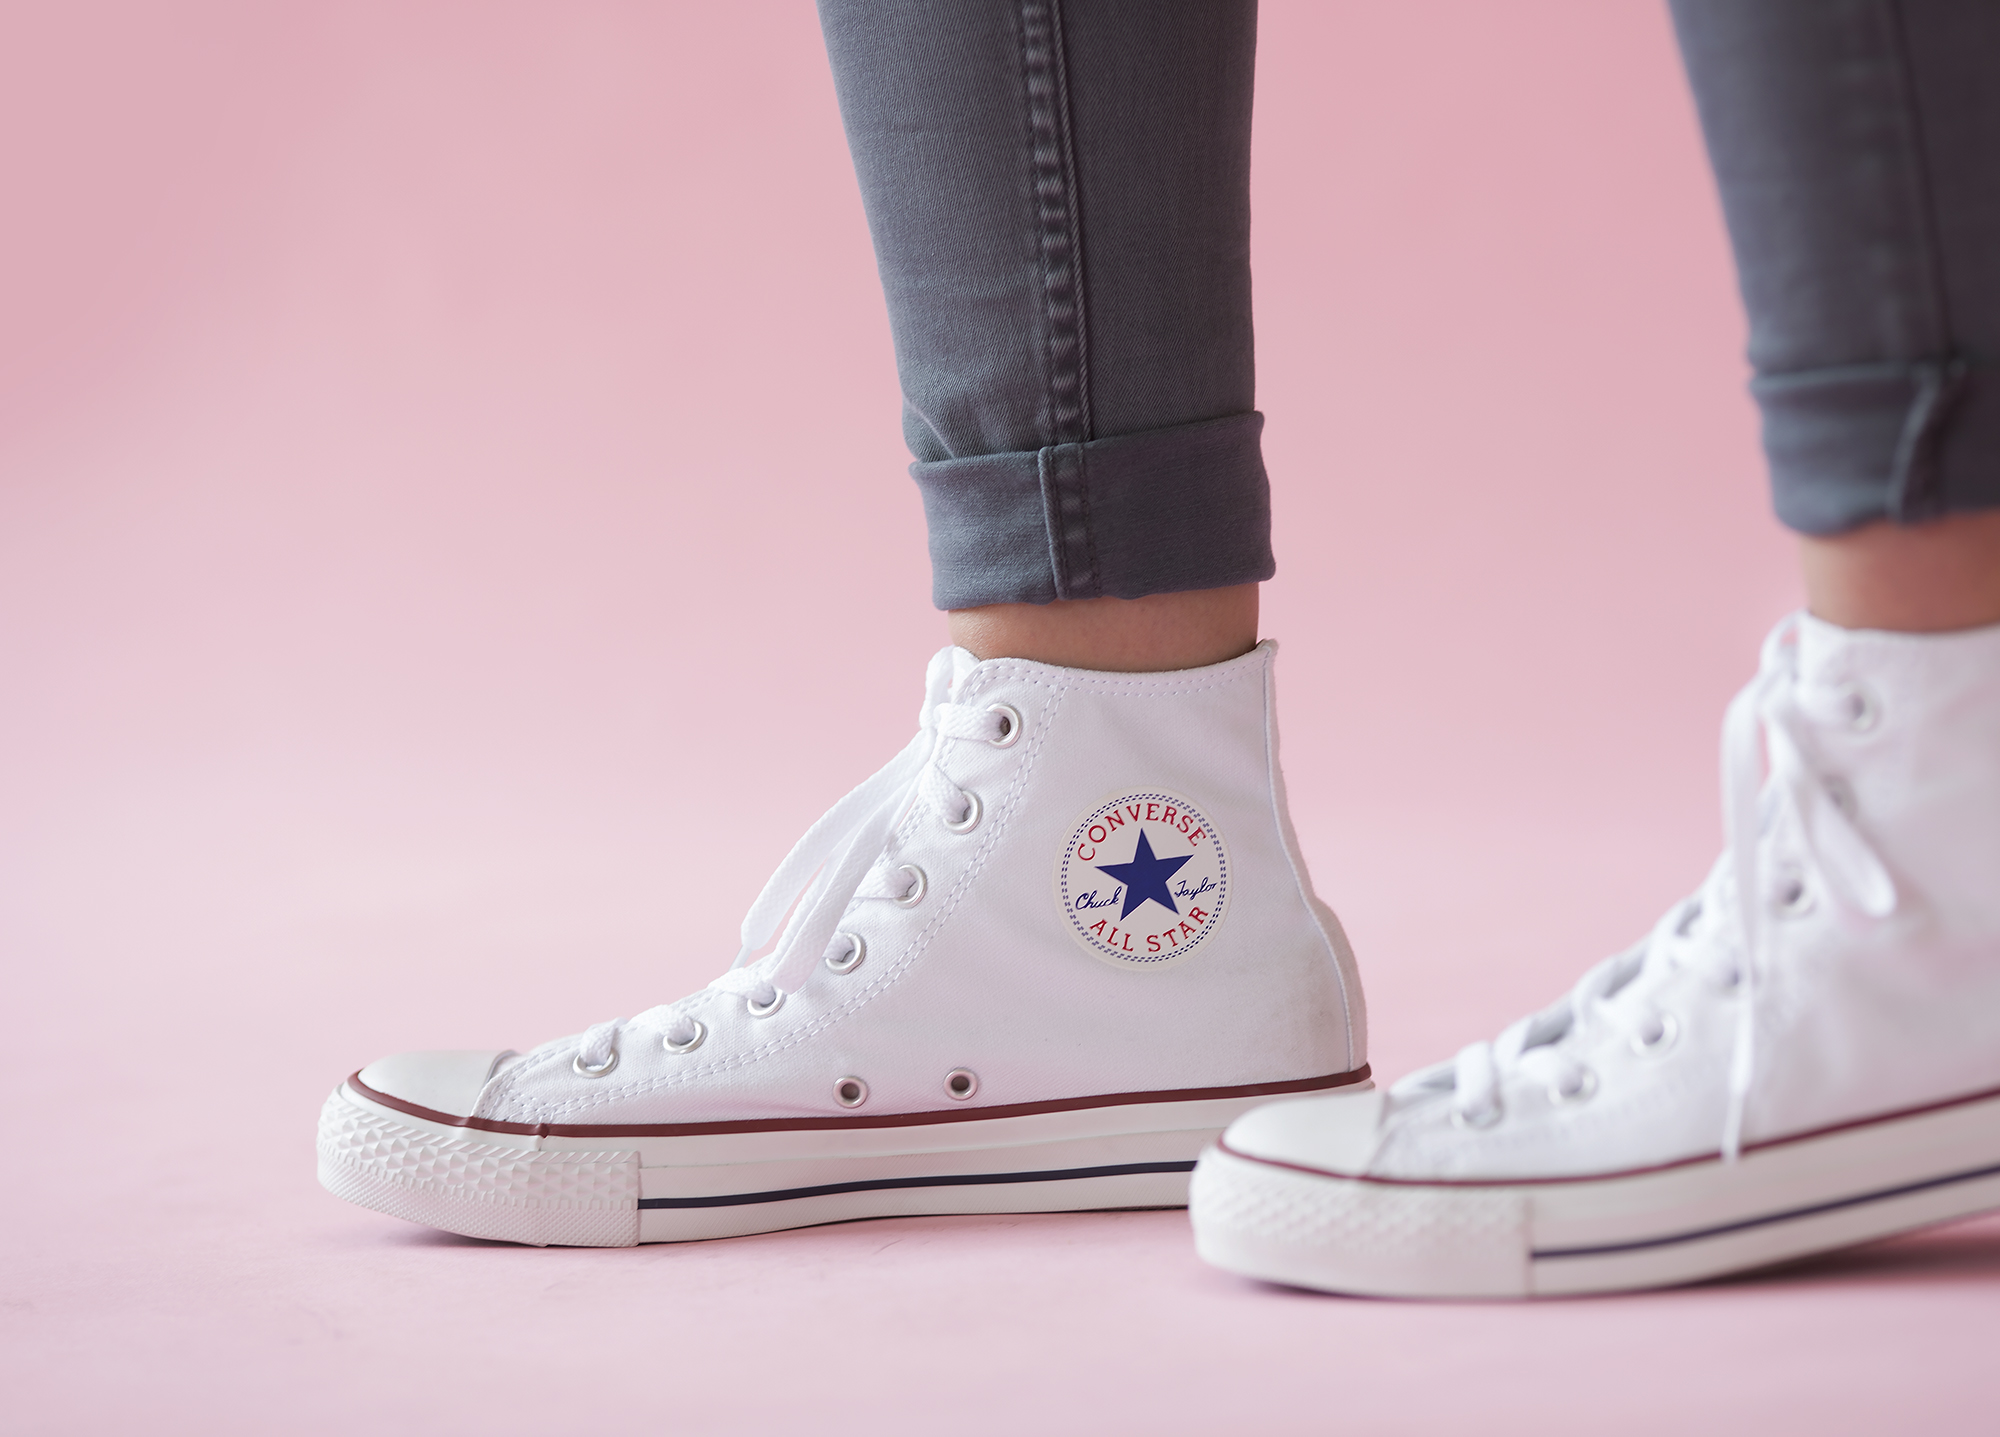 Converse shoes, from Amazon.